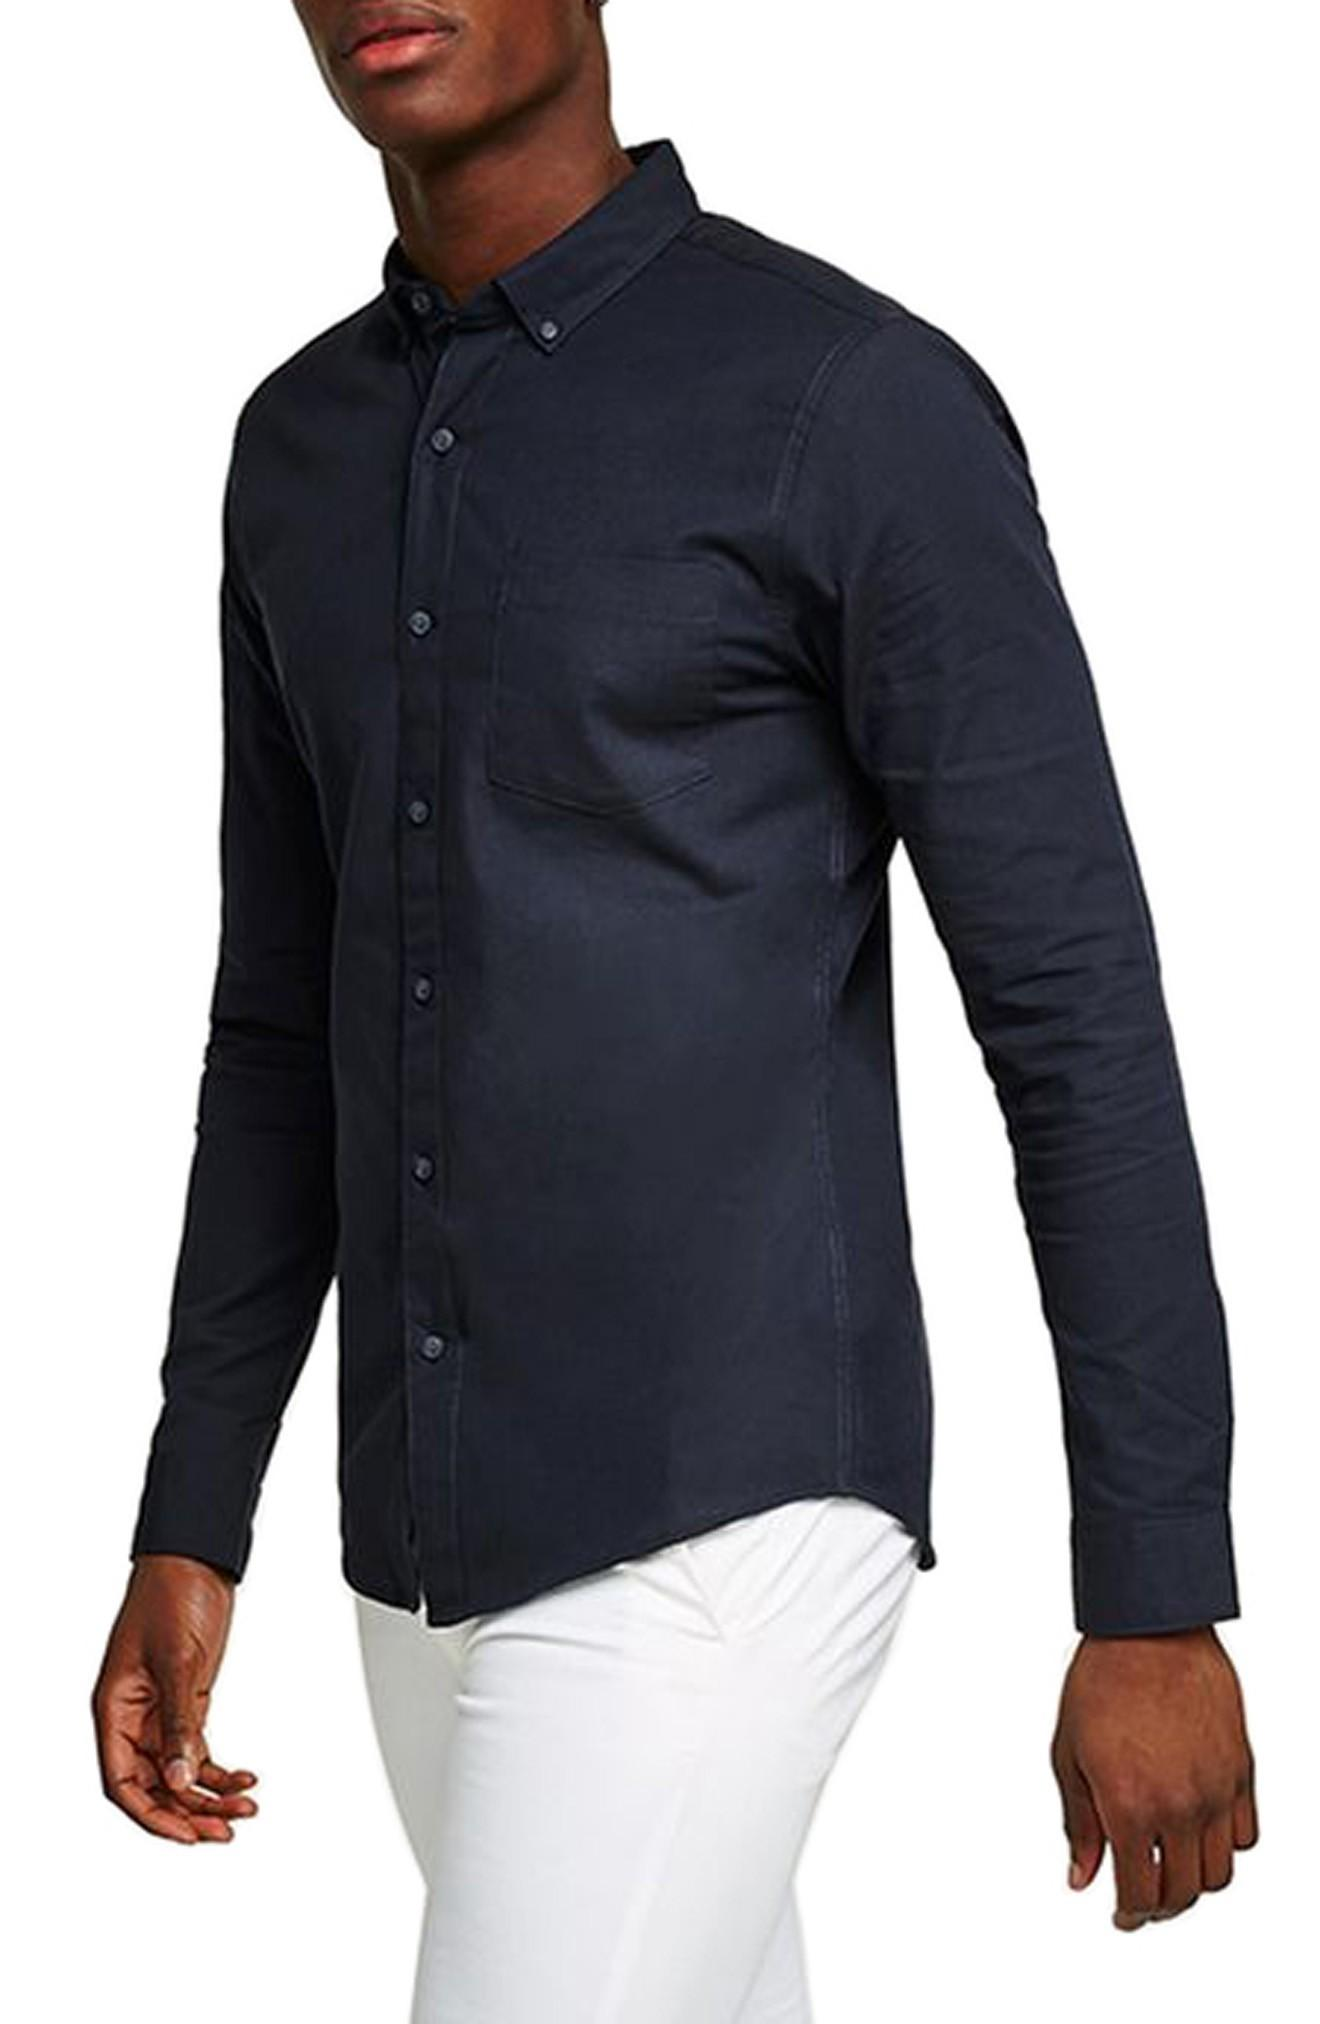 Topman Oxford Shirt In Navy Blue